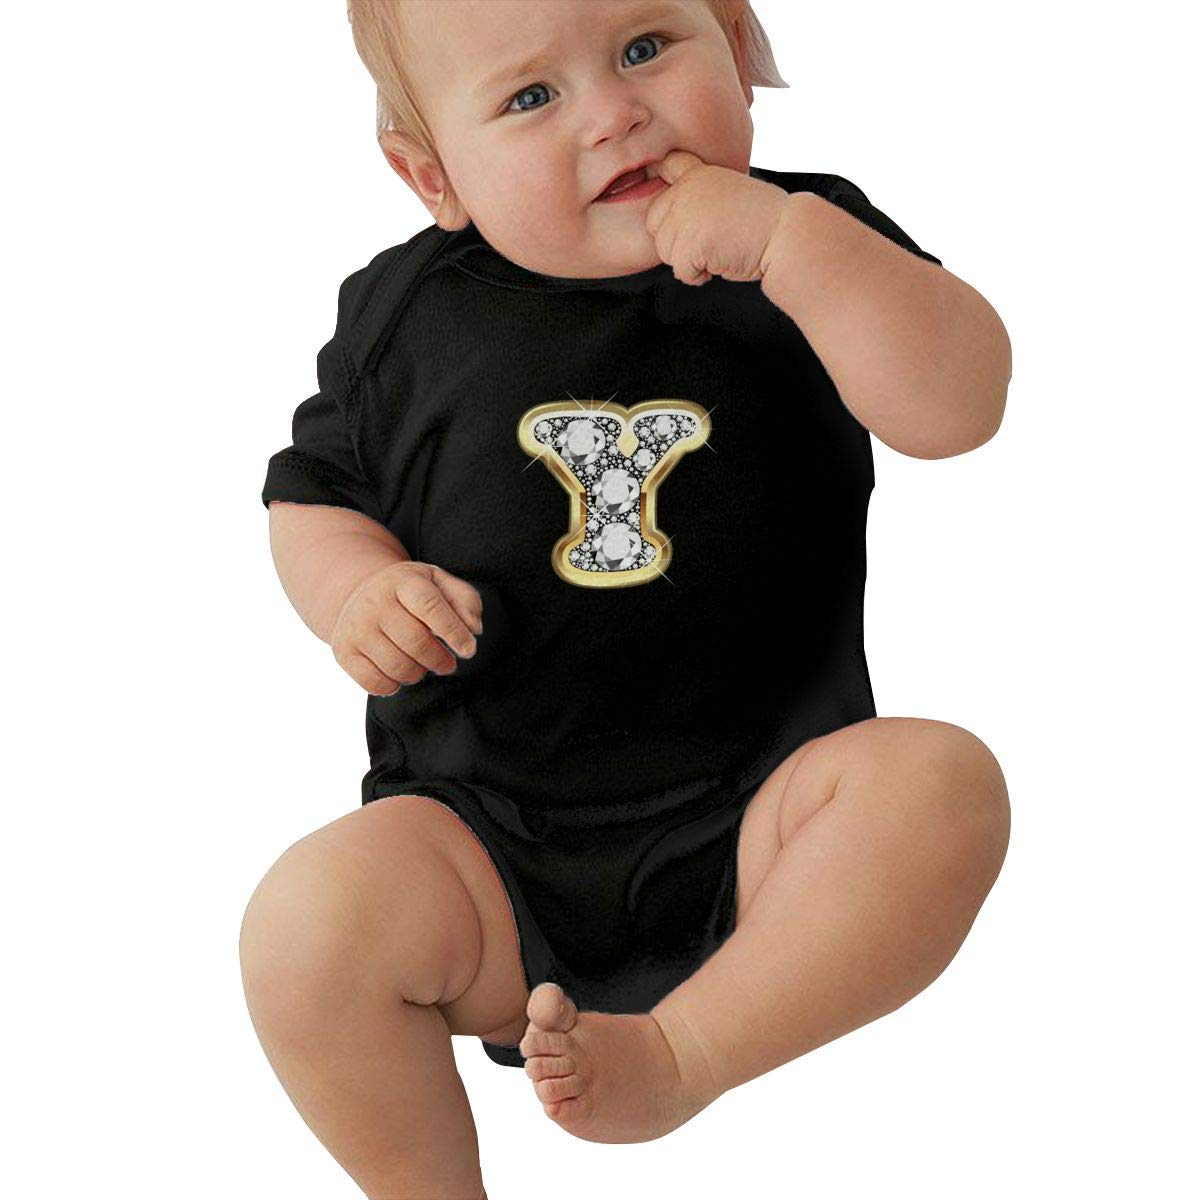 Faleny Cotton Baby Onesies-Unisex Breathable Rompers Y Letter in Gold Bodysuits Lab Shoulder Neckline Jumpsuit Infant One-Piece Outfit Short Sleeve Jersey 0-24 Months